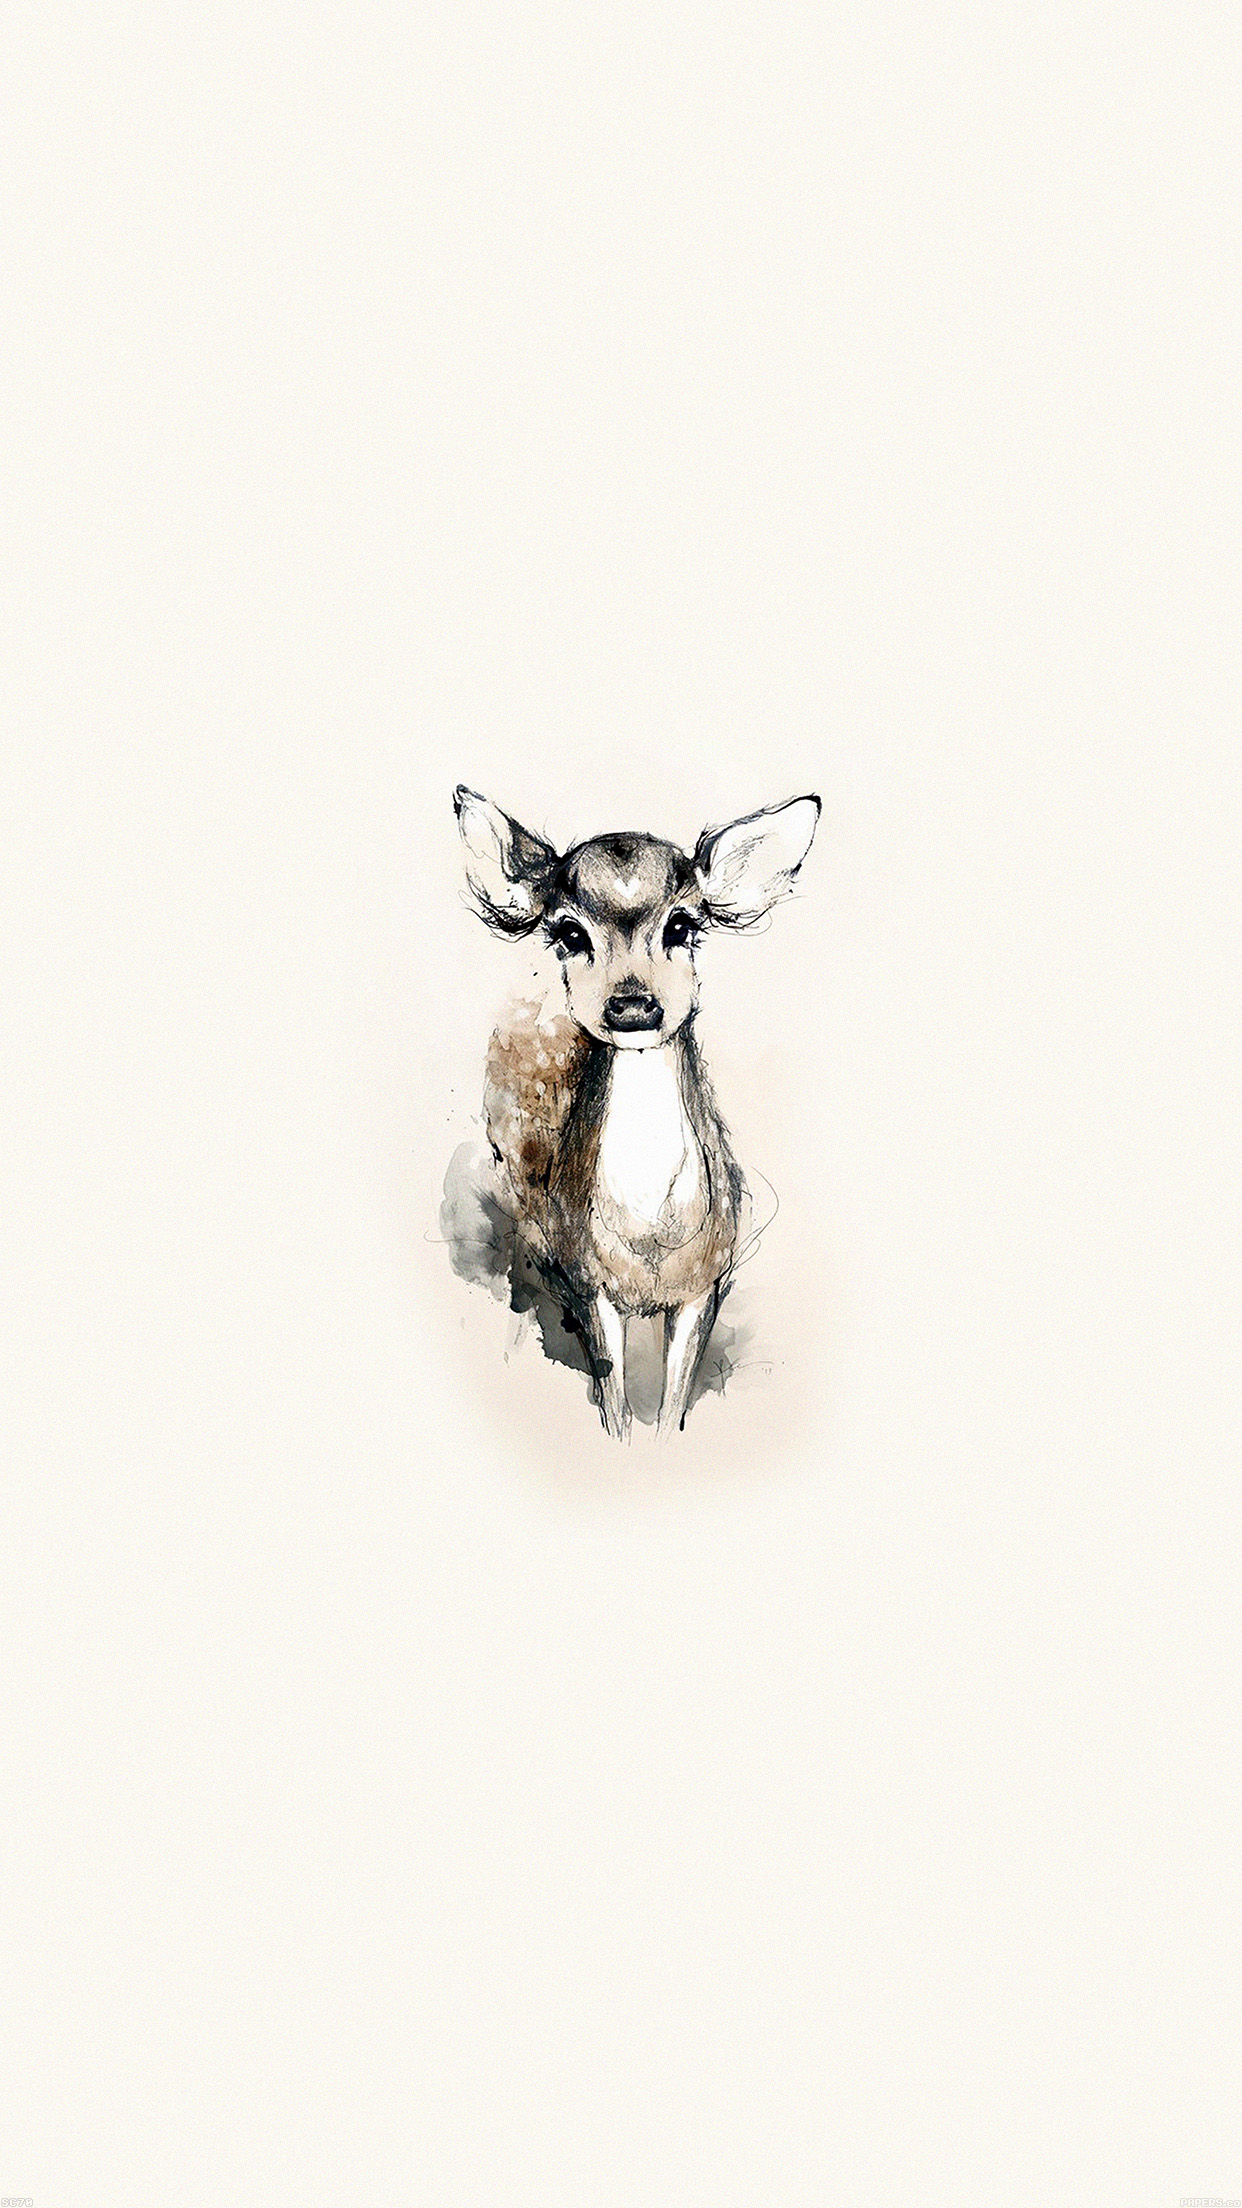 Ae07 tiny deer illust art - Classic art wallpaper iphone 5 ...